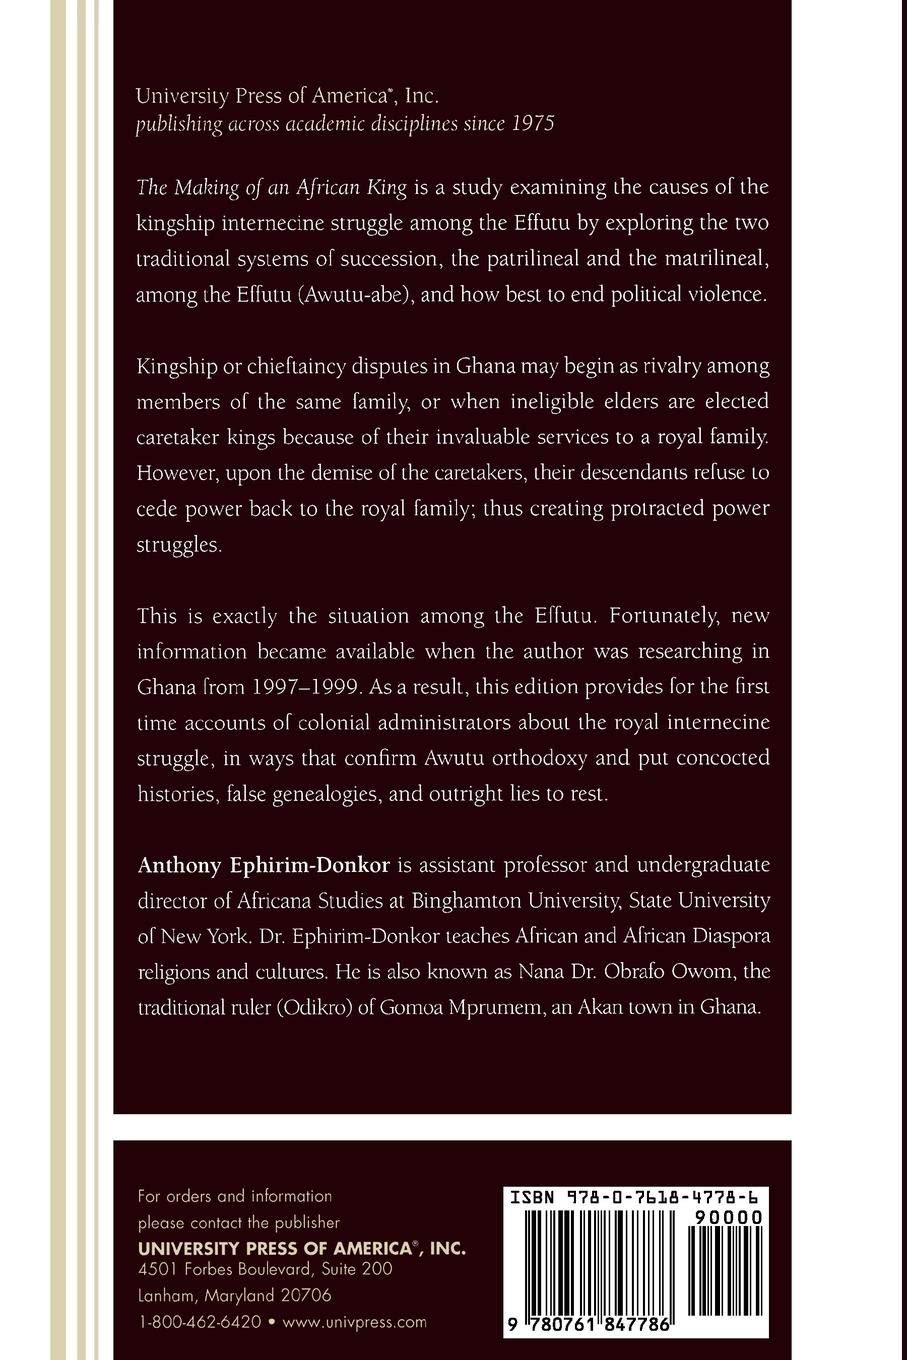 Buy The Making of an African King: Patrilineal and Matrilineal Struggle  Among the Effutu of Ghana Book Online at Low Prices in India | The Making  of an ...